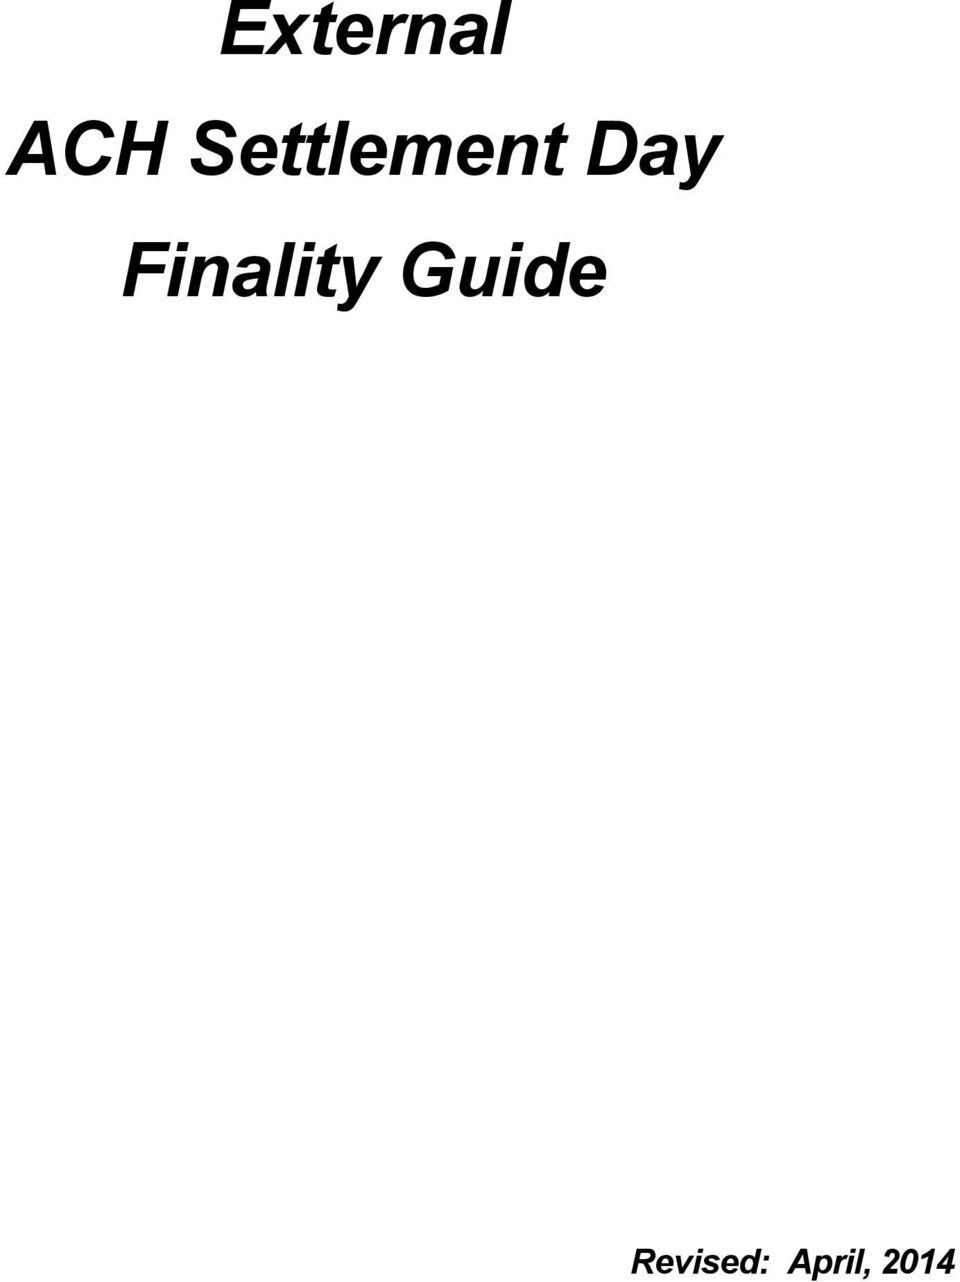 Finality Guide